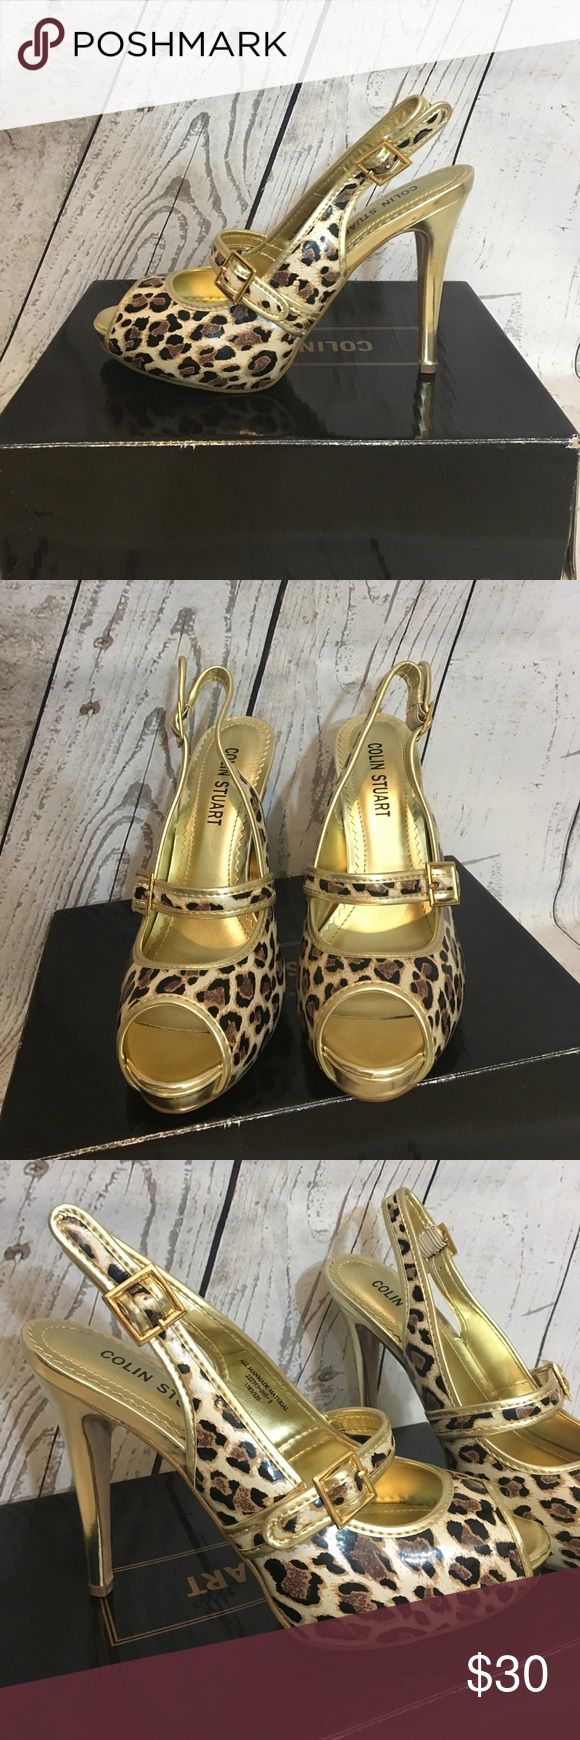 Colin Stuart open-toed leopard stilettos Brand NEW in box! Colin Stuart leopard print, open-toed, stiletto heels. Size 8. I purchased these online from Victoria's Secret but never had anywhere to wear them. Absolutely stunning gold color! Don't miss out on these! Perfect for spring and summer and a night out on the town. Could also be great shoes to wear to a wedding 😍🖤👠 Colin Stuart Shoes Heels